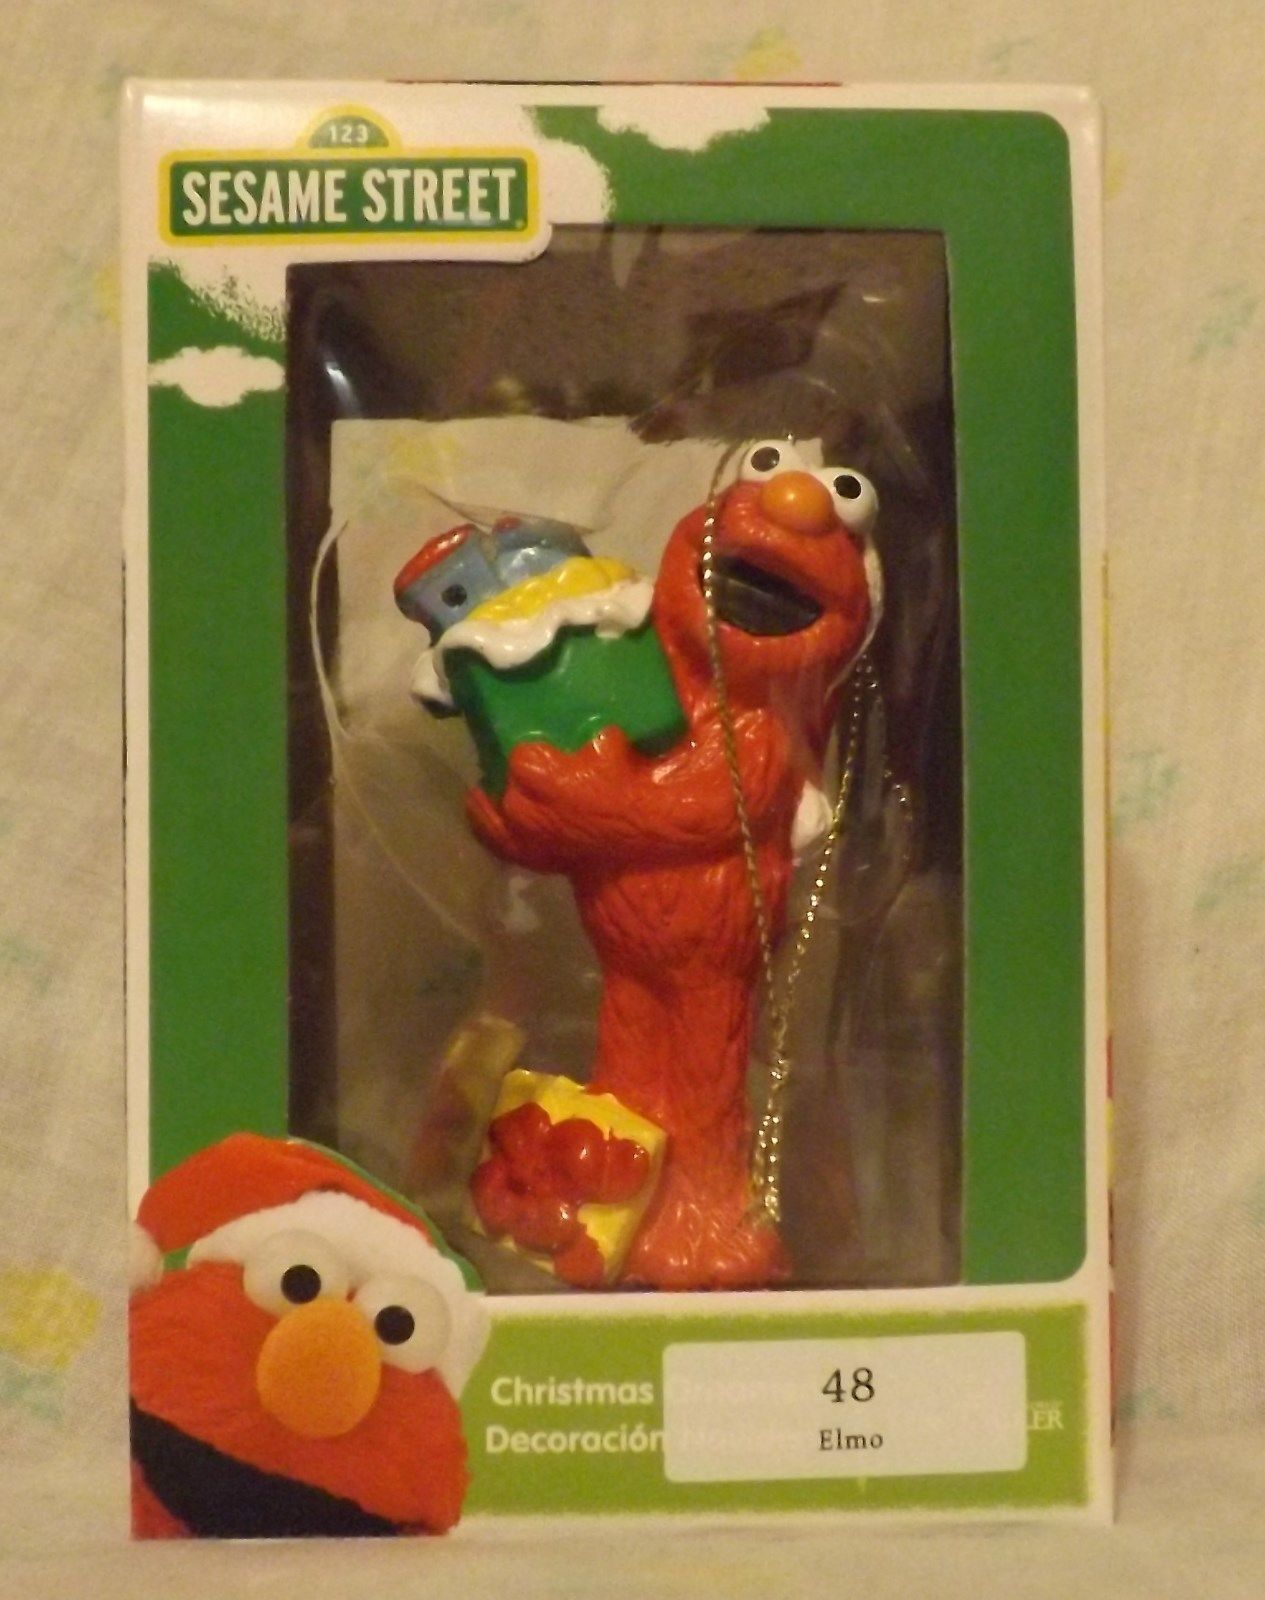 Sesame Street Elmo Ornament 2013 by Kurt S Adler